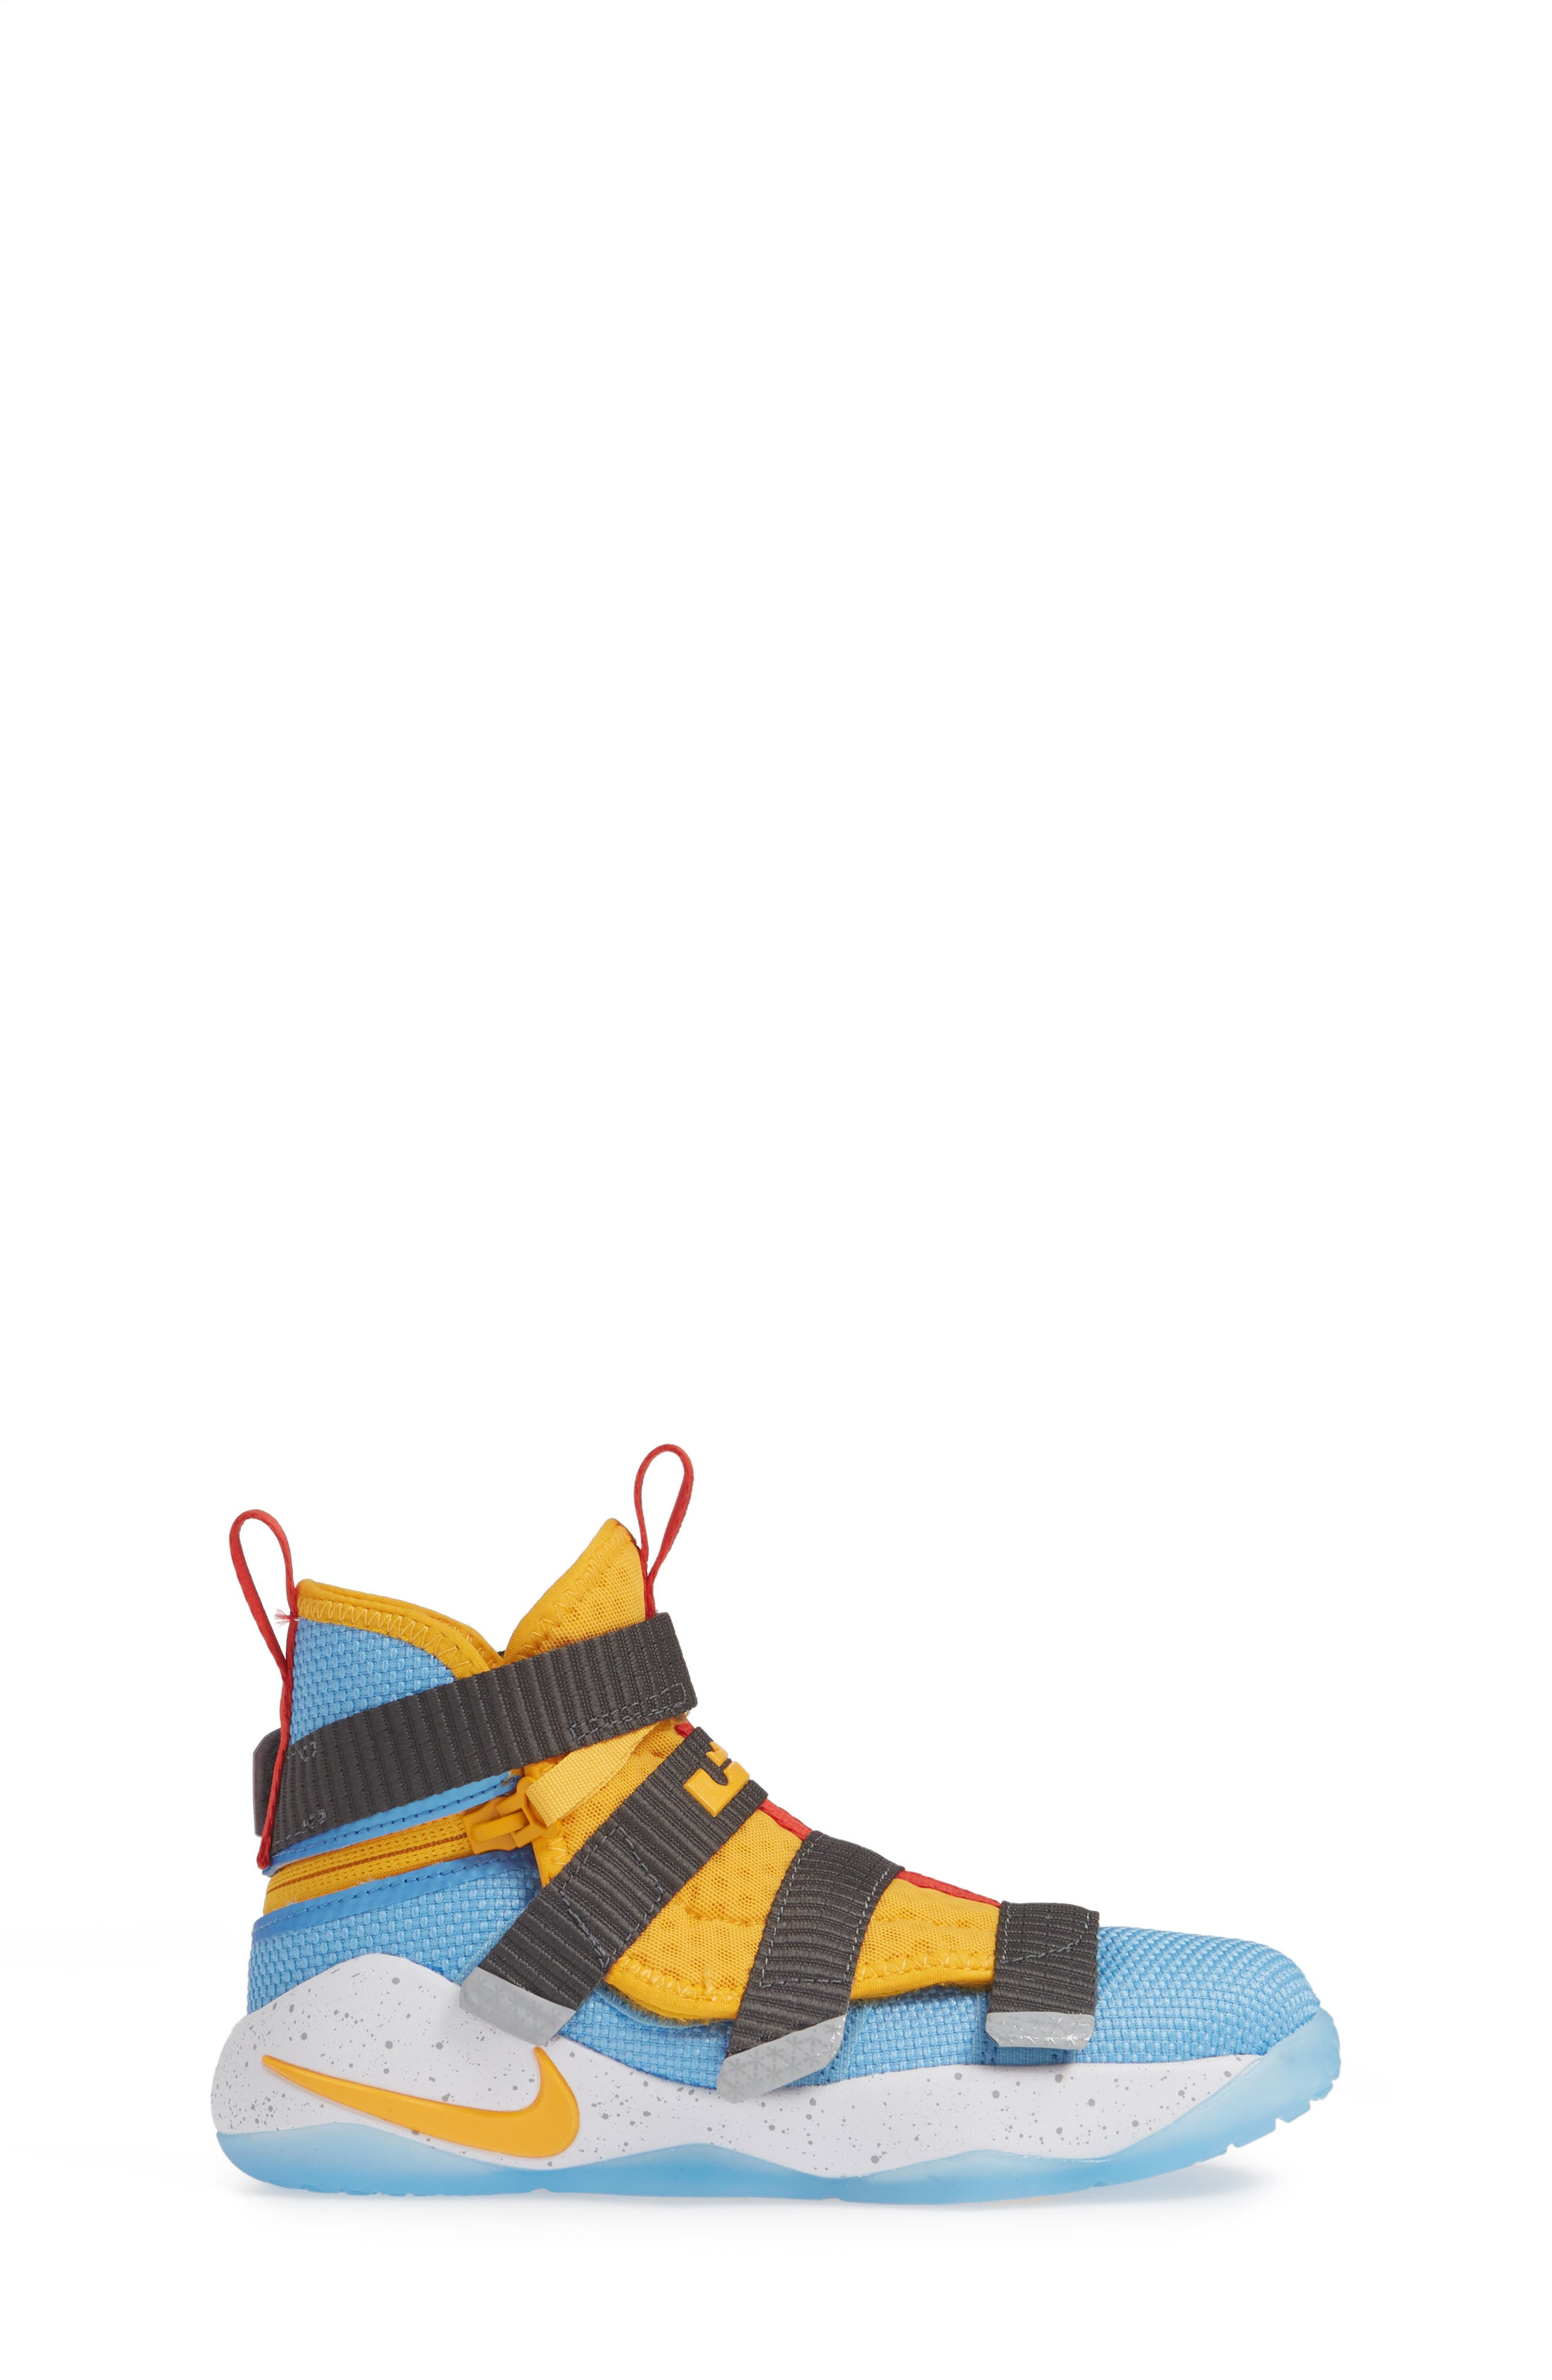 LeBron Soldier XI FlyEase High Top Sneaker,                             Alternate thumbnail 3, color,                             UNIVERSITY GOLD/ WHITE-RED